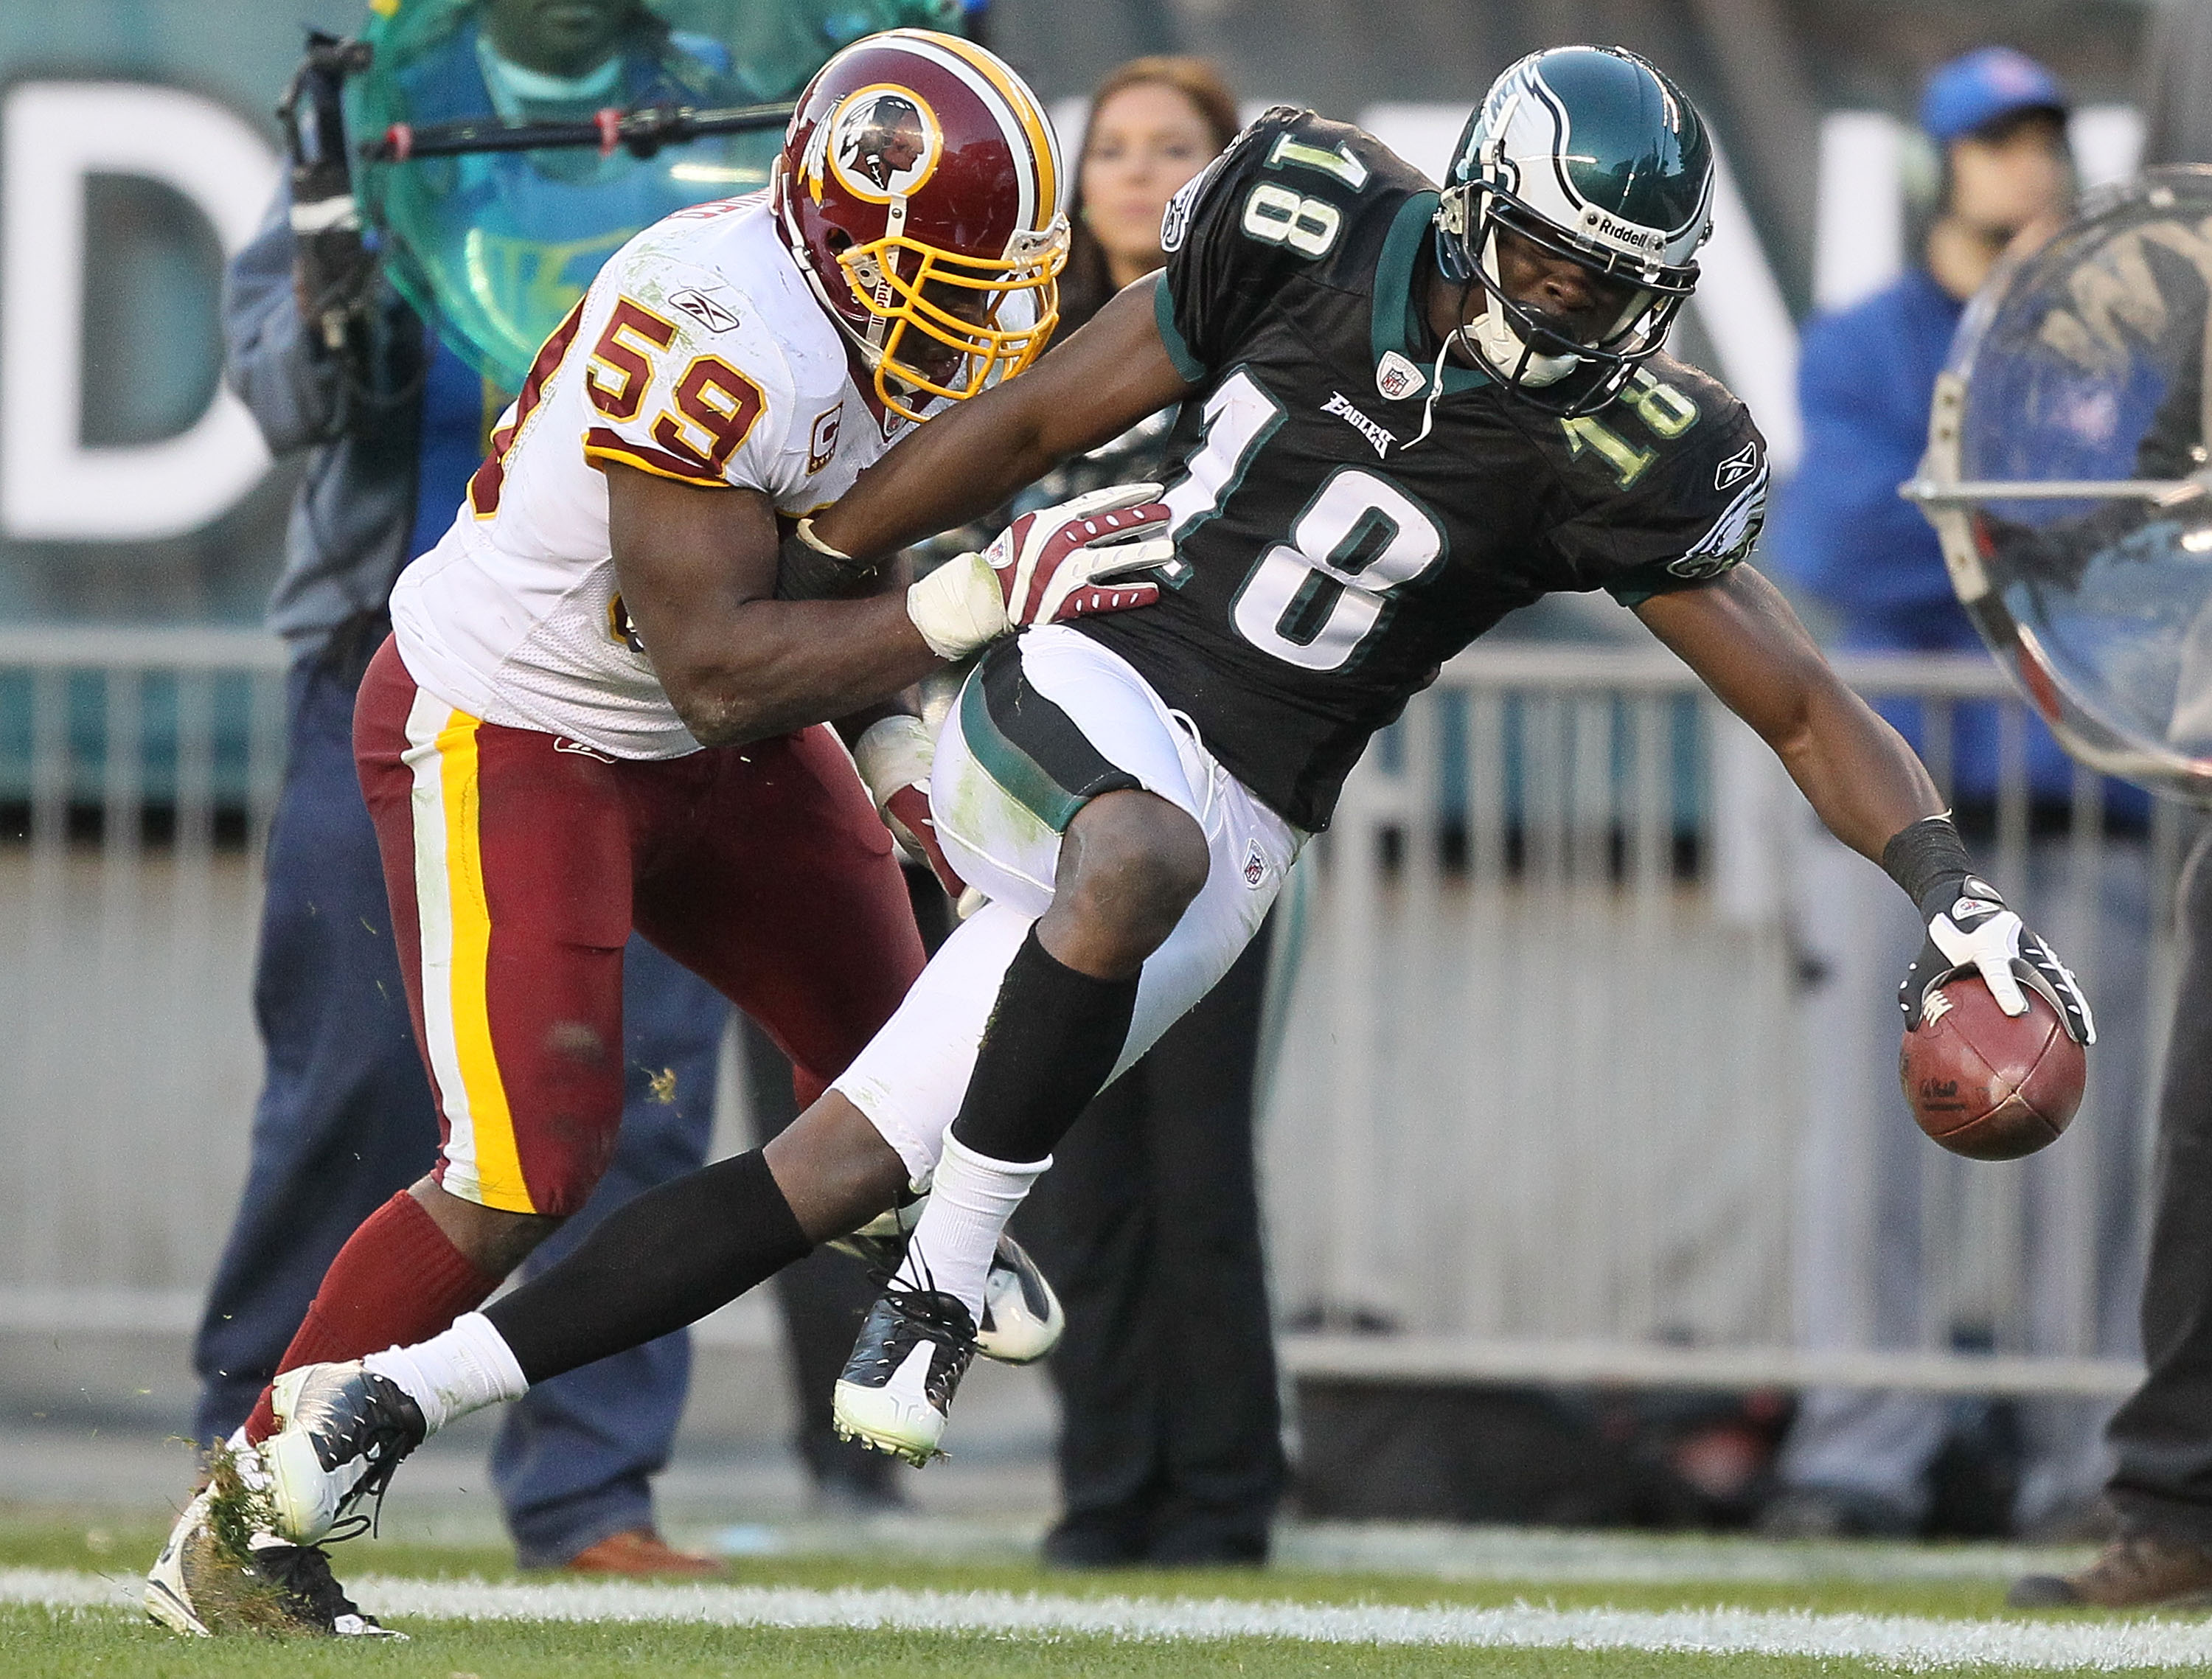 PHILADELPHIA - NOVEMBER 29:  Jeremy Maclin #18 of the Philadelphia Eagles makes a catch and is pushed out of bounds by London Fletcher #59 of the Washington Redskins during their game at Lincoln Financial Field on November 29, 2009 in Philadelphia, Pennsy